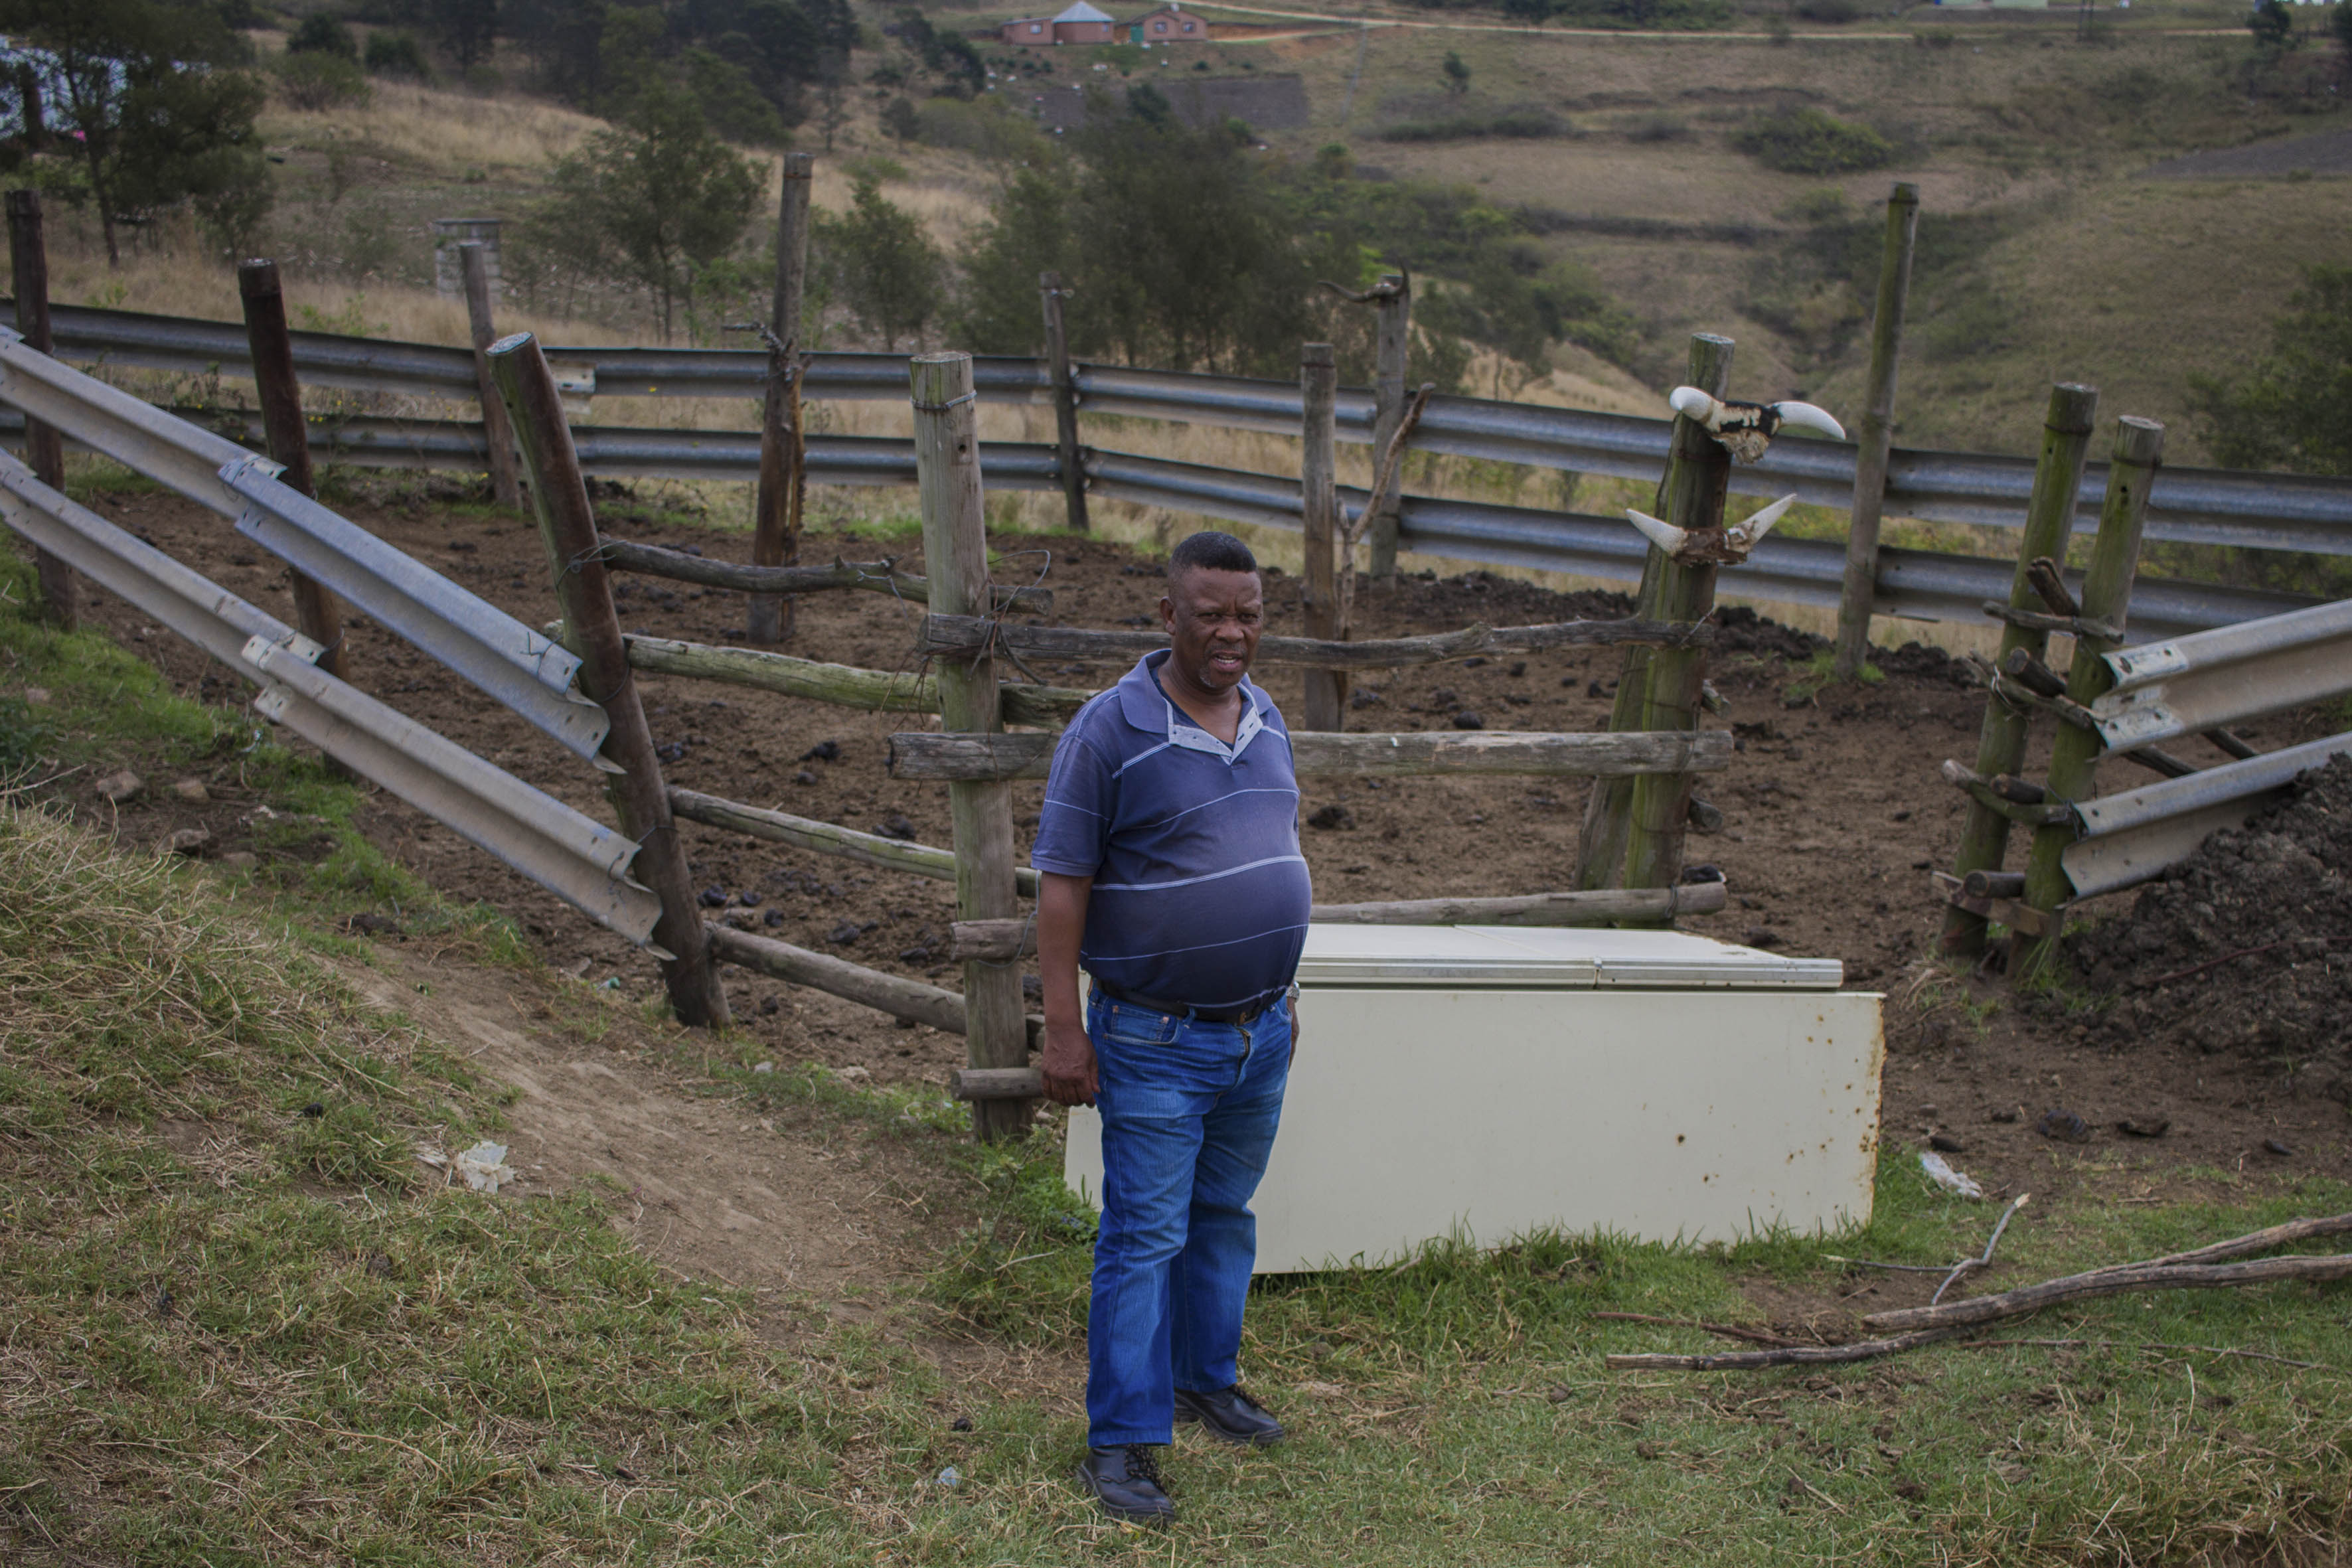 3 October 2019: Gideon Sithembiso Mthembu, an induna from Hlomendlini in Izingolweni, KwaZulu-Natal, standing outside his kraal.